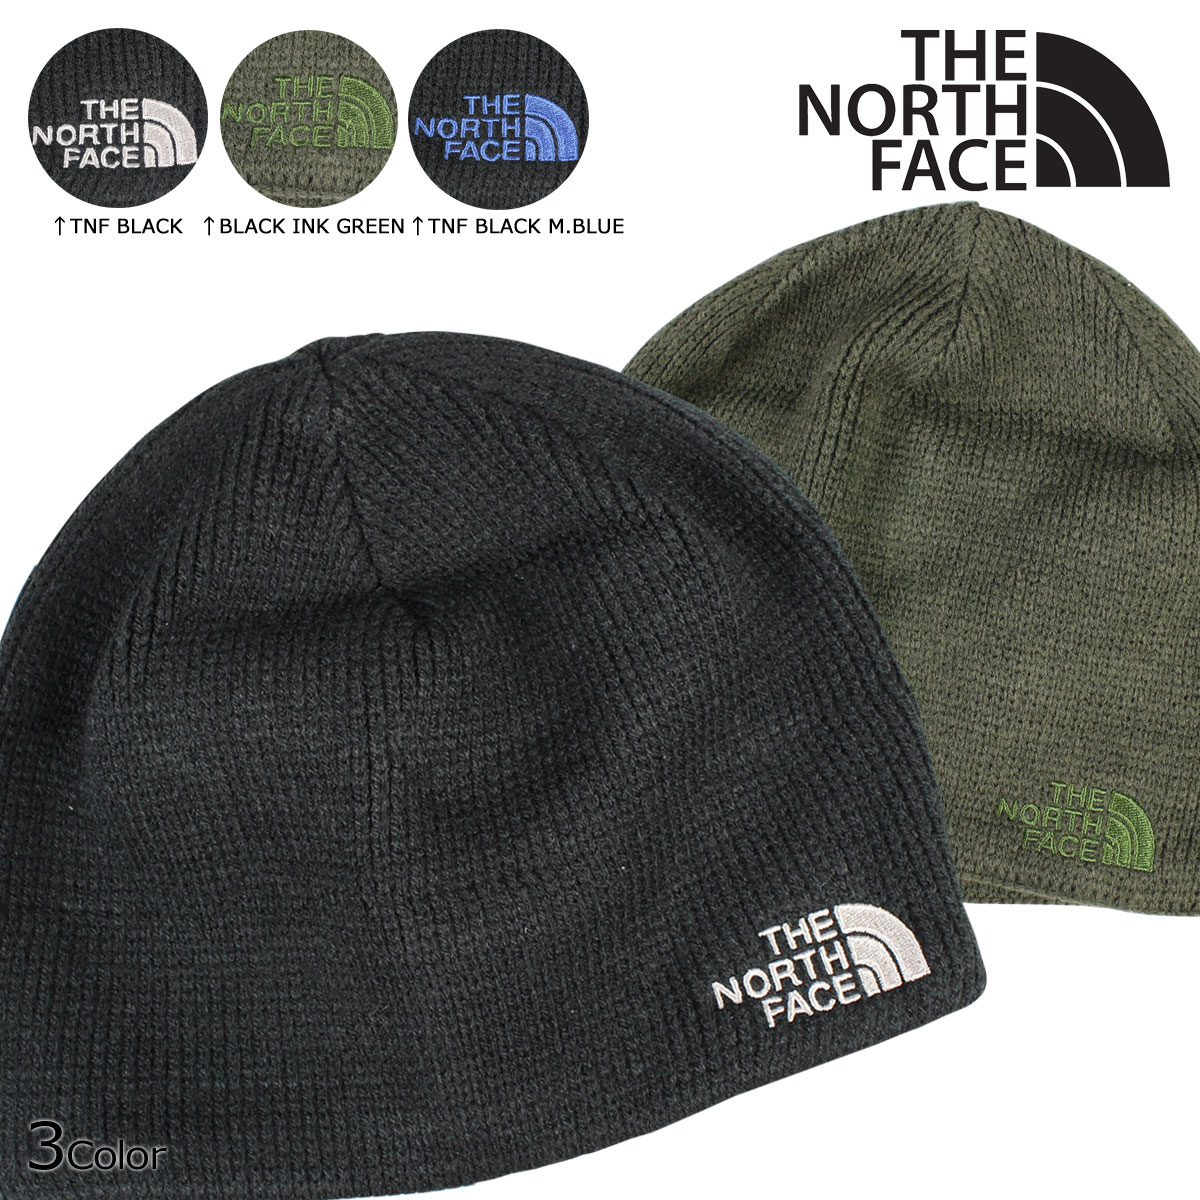 Whats up Sports   SOLD OUT  North Face THE NORTH FACE knit hat beanie knit  cap AHHZ 3 color BONES BEANIE men gap Dis  1fd8fbb5a8b